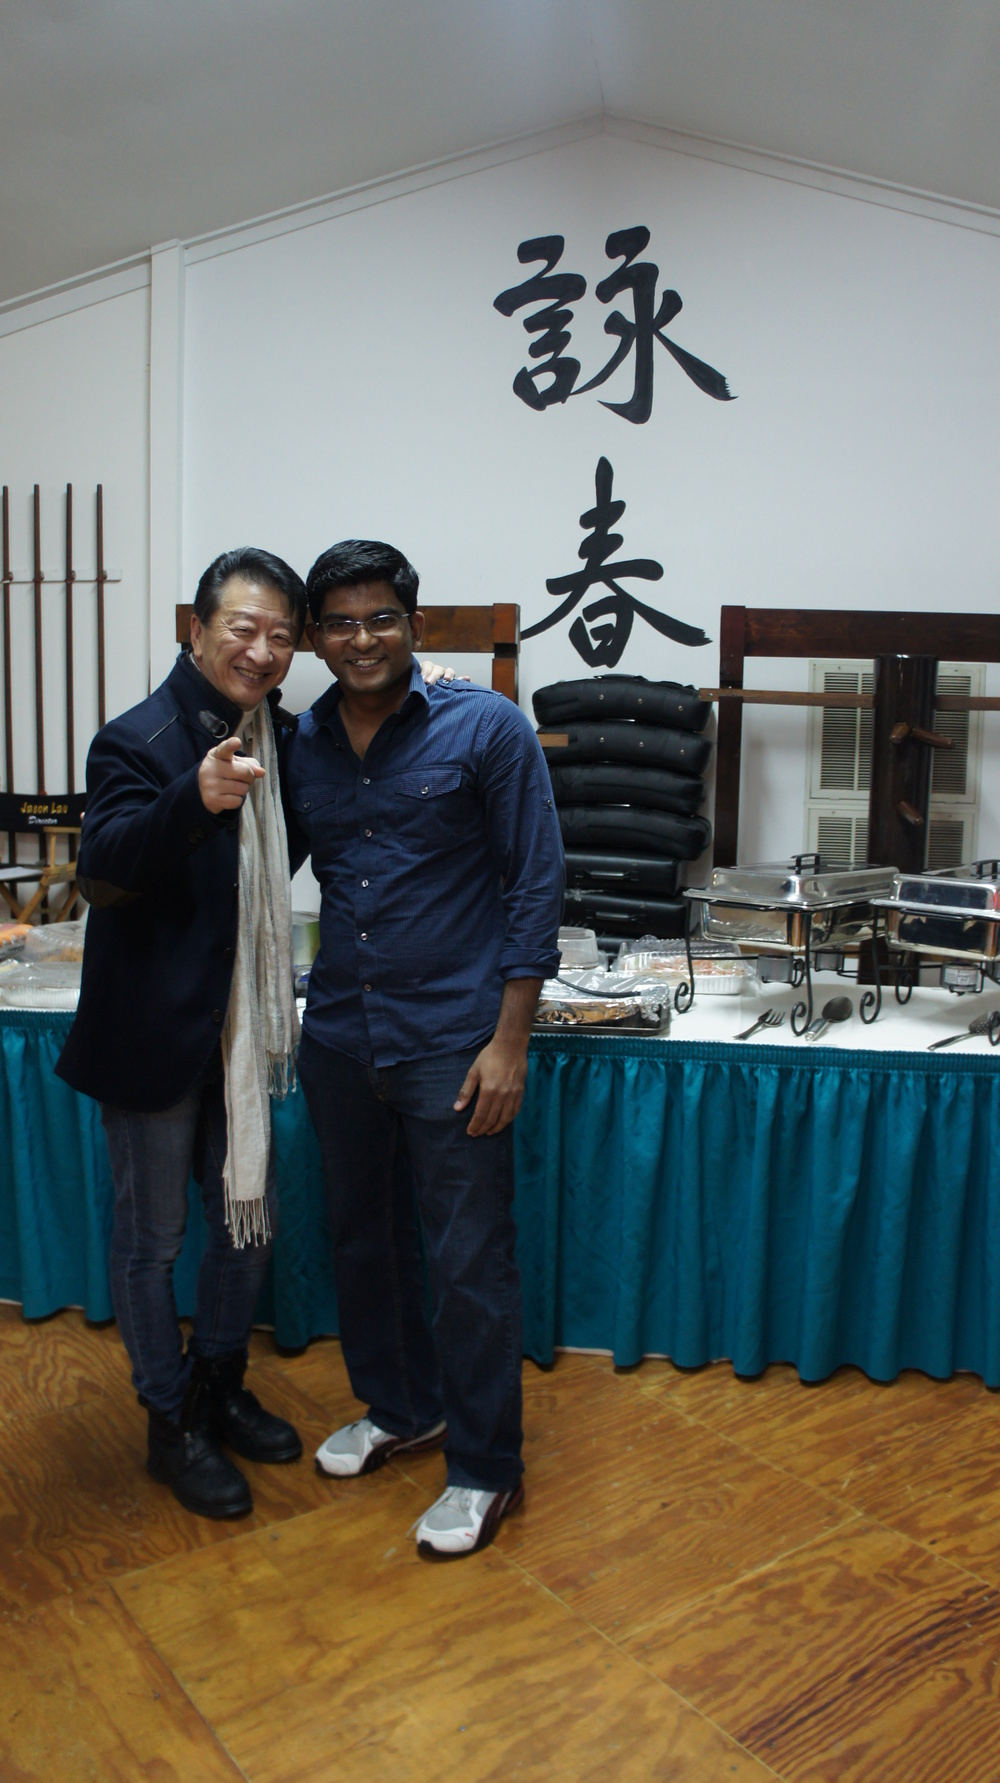 Christopher with Sifu